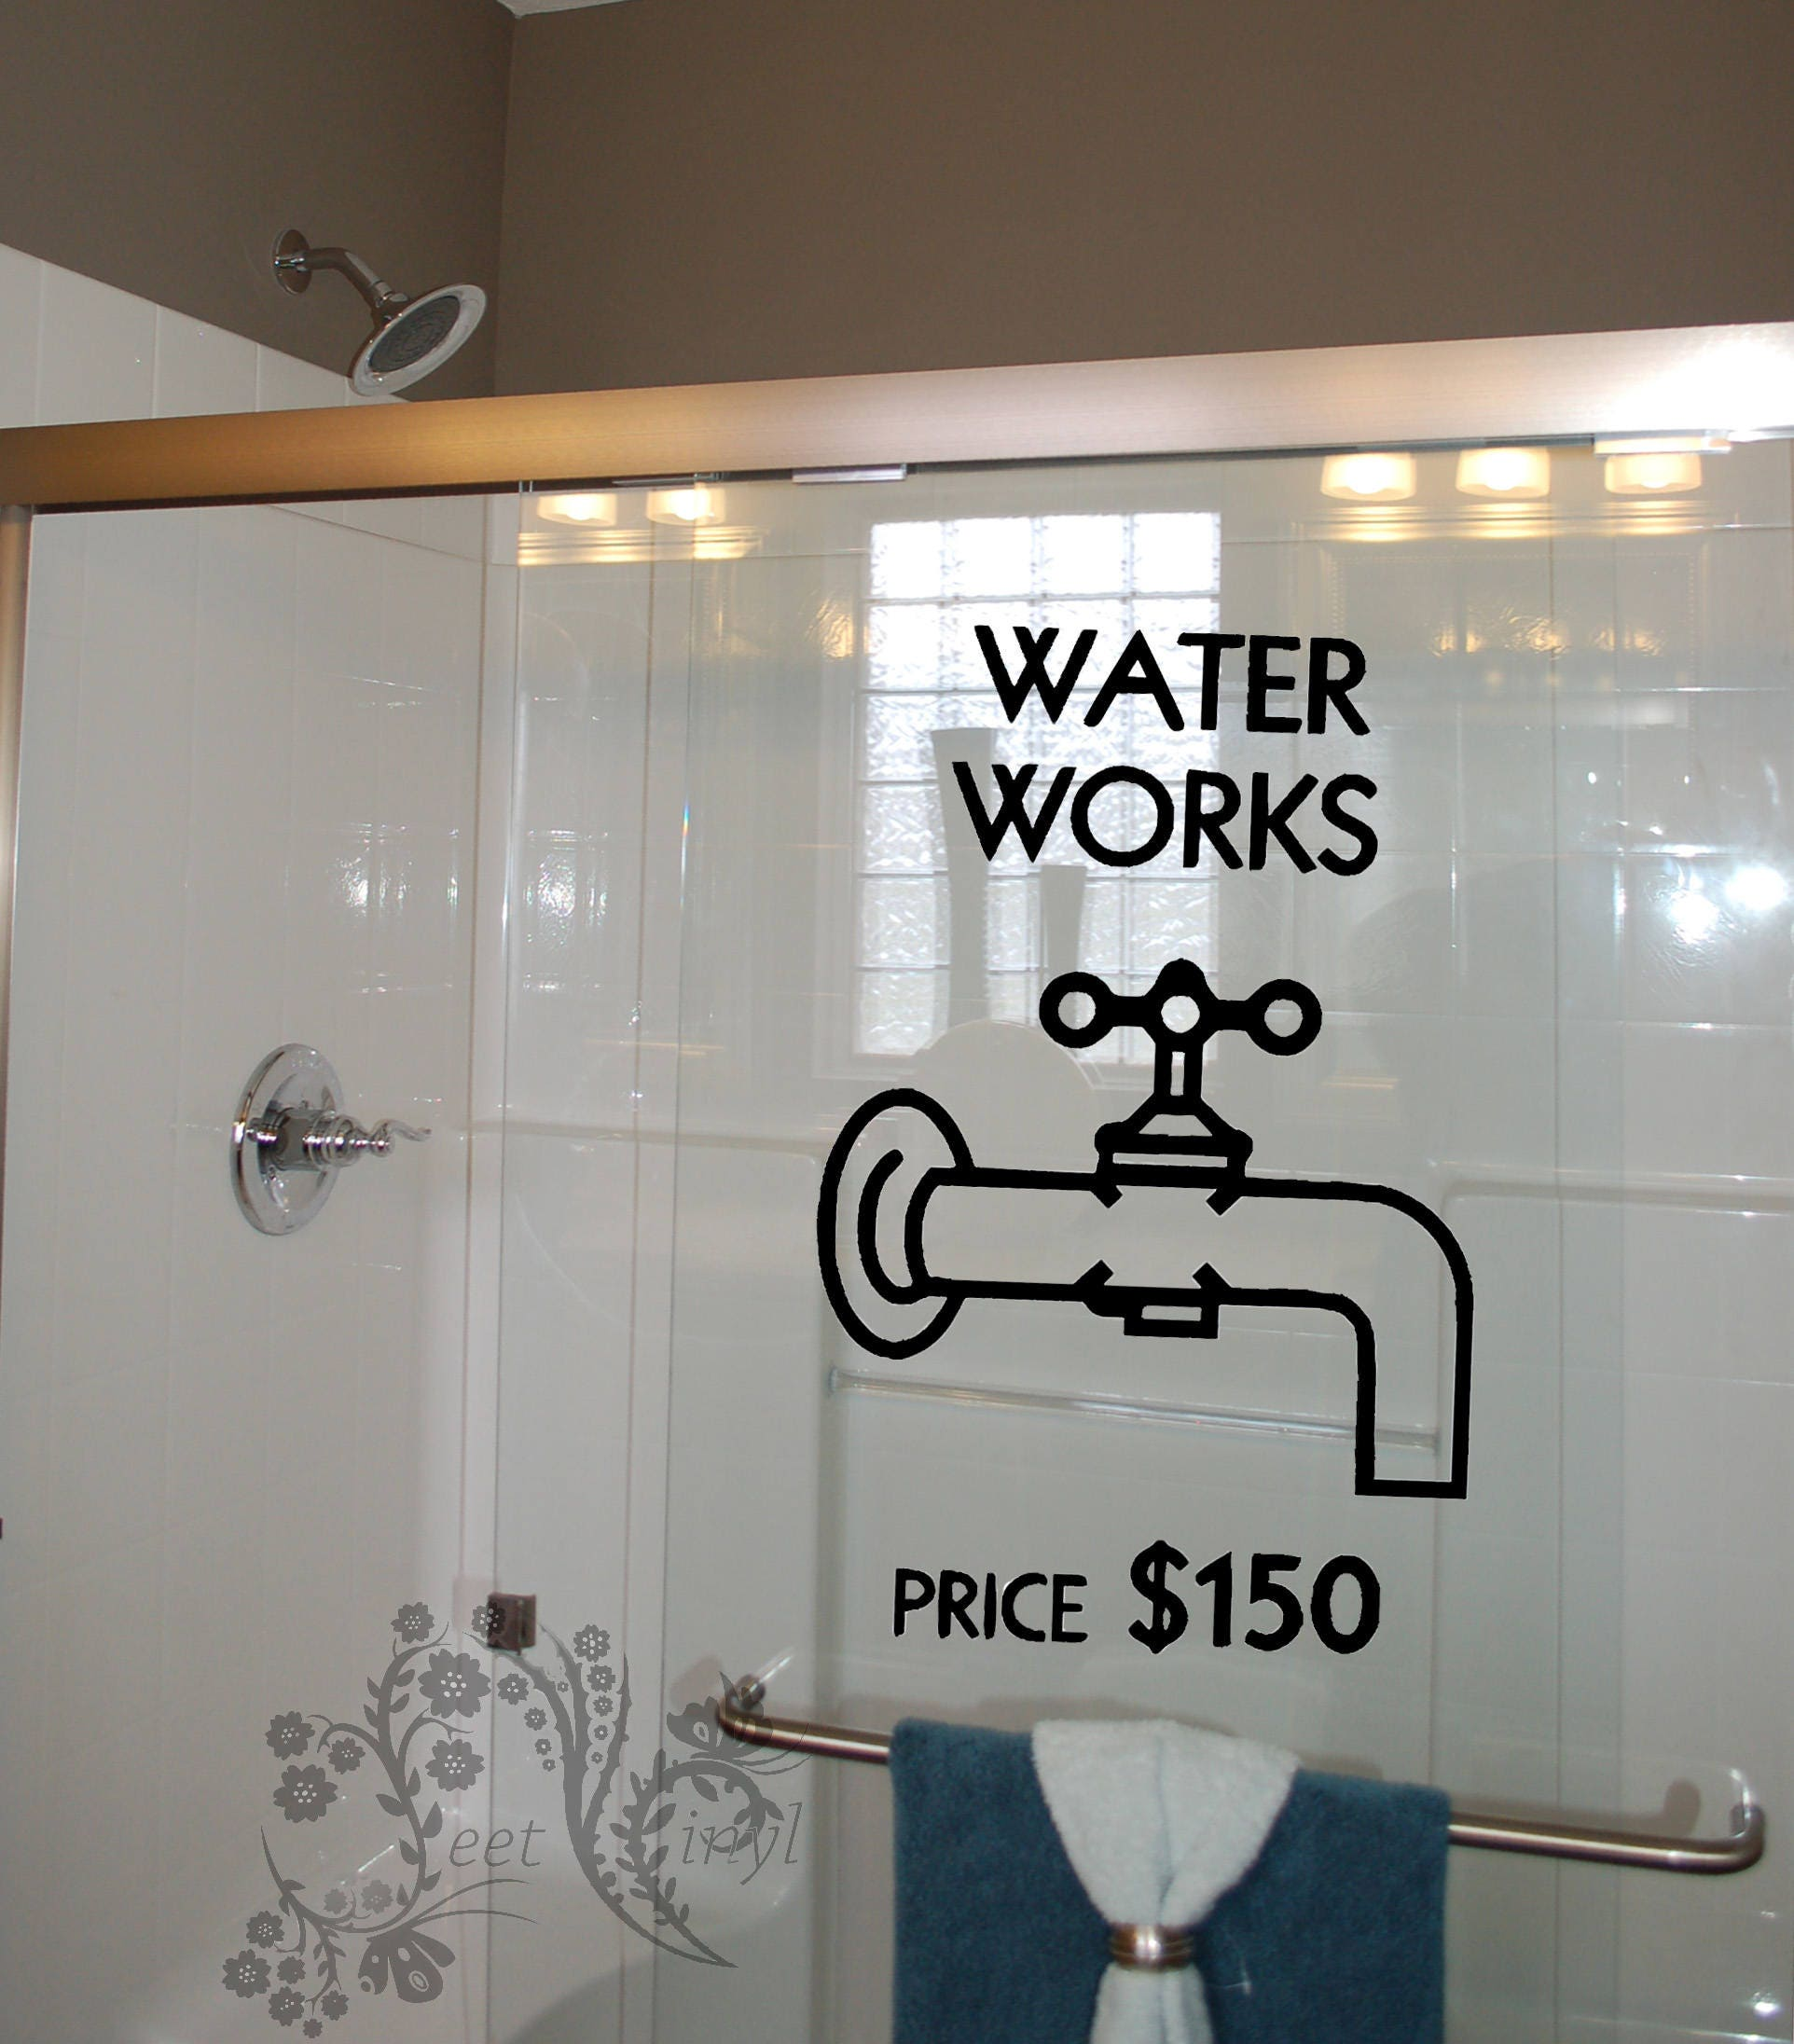 Water Works Price 150 - Wall Decals - Wall Decal - Wall Vinyl - Wall Decor